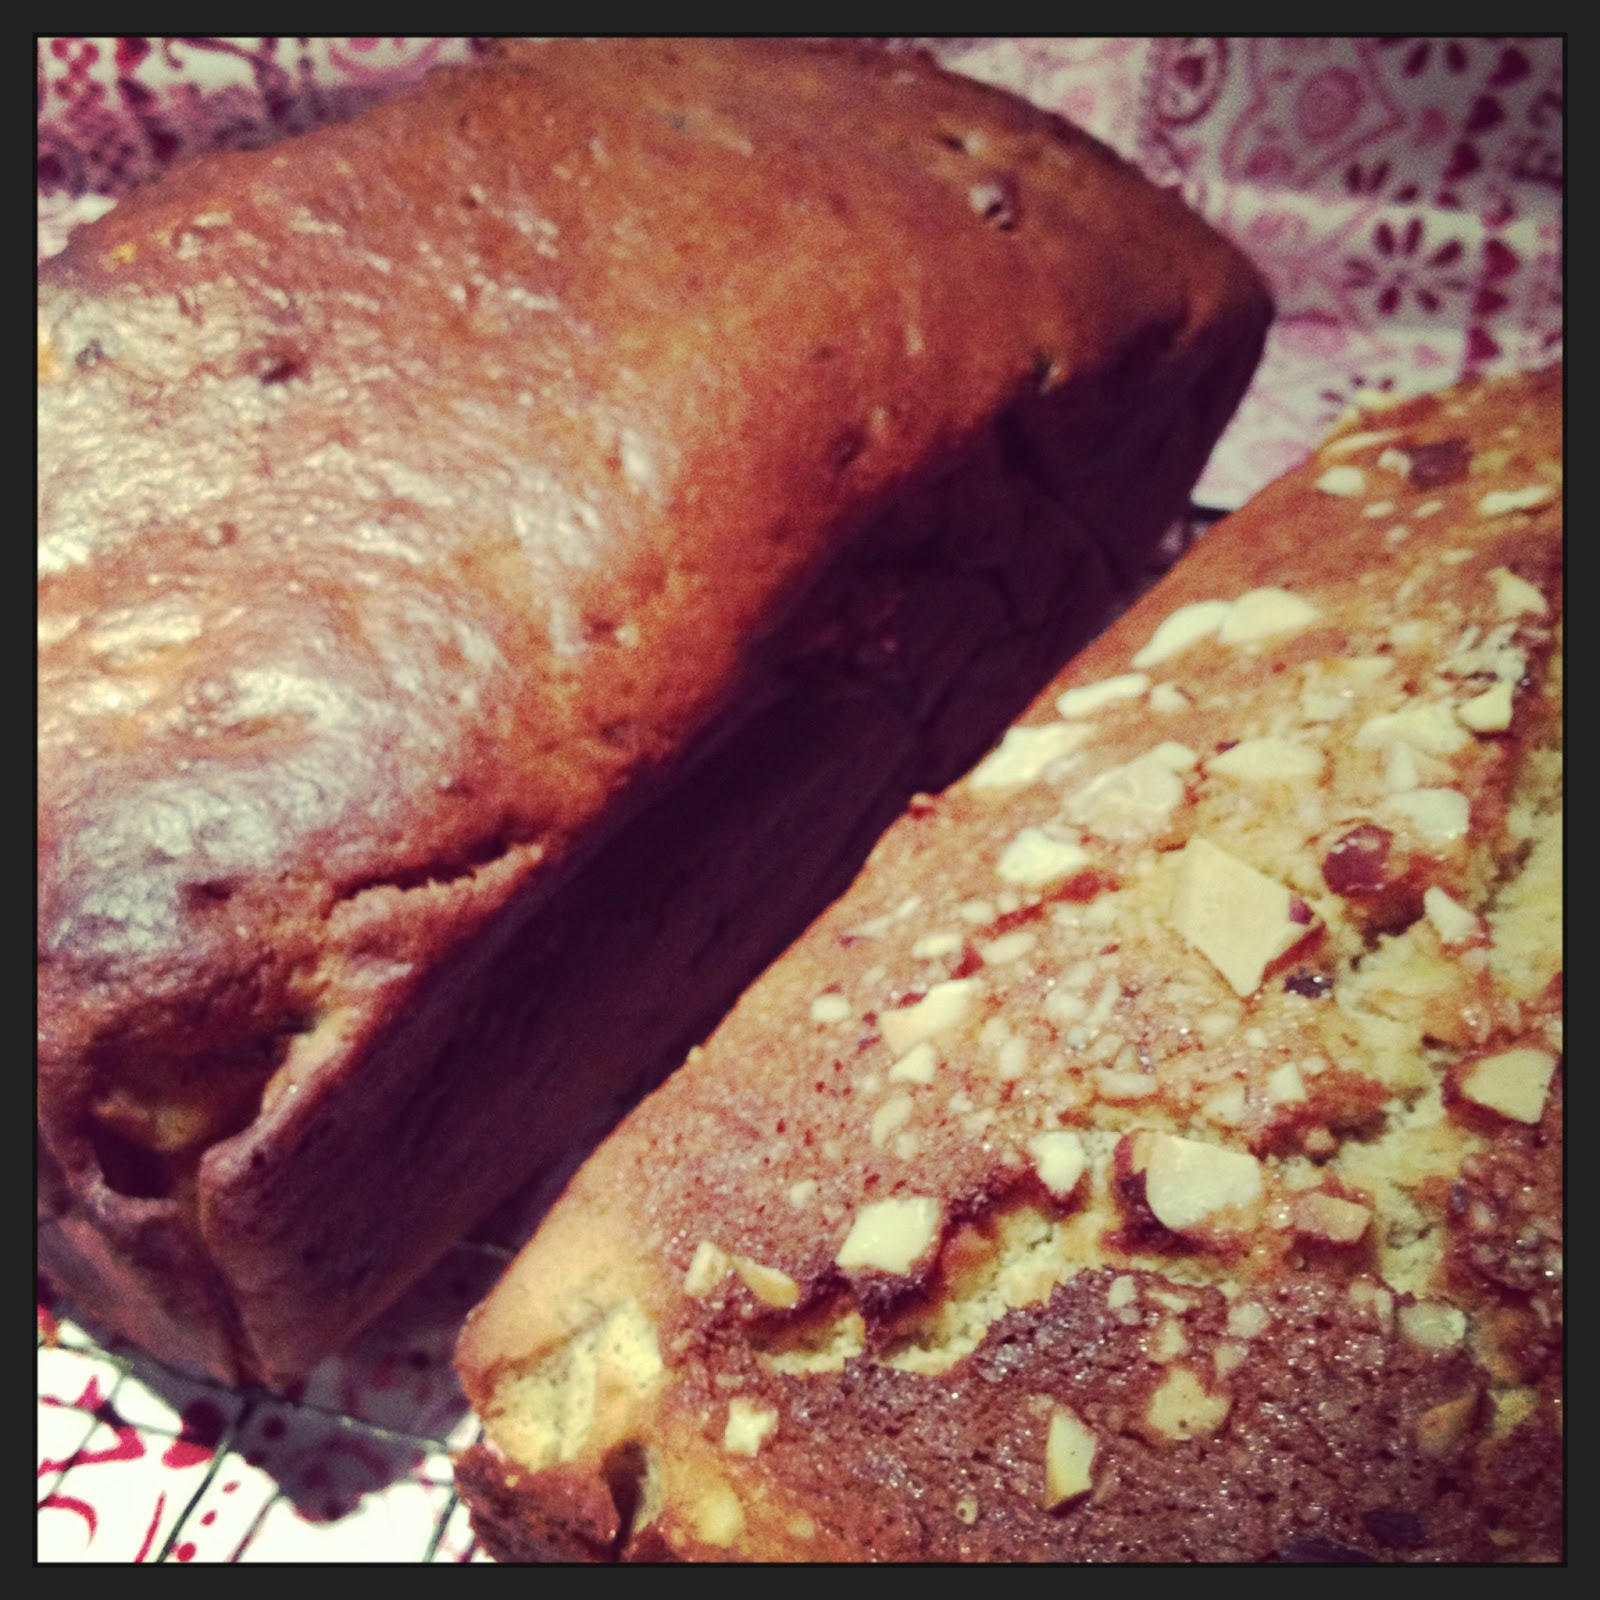 Healthy & Happy Banana Cinammon Loaf (with secret courgette) - a Random Recipe